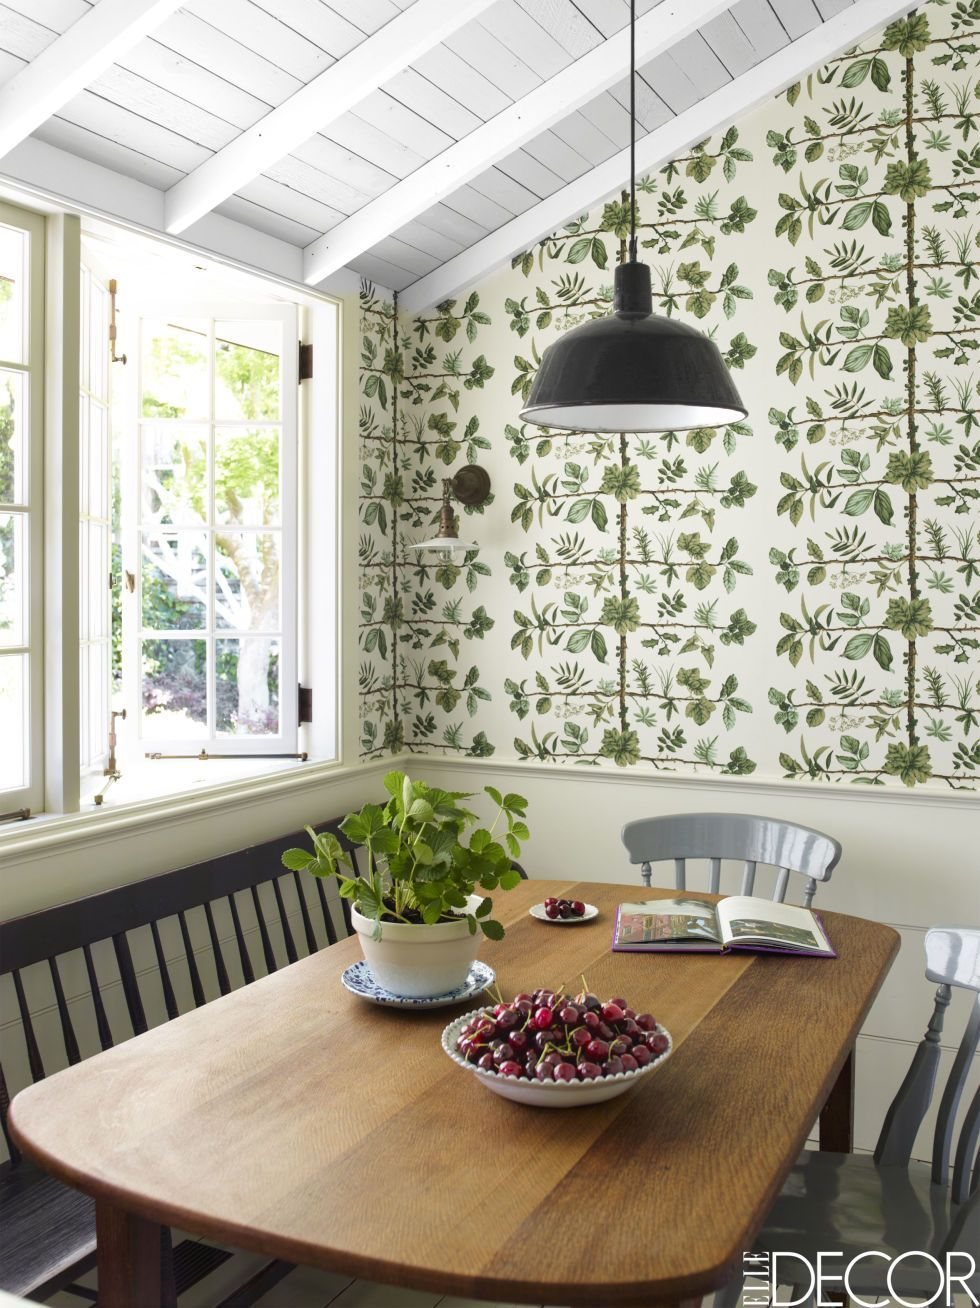 Green floral wallpaper in a dining nook.